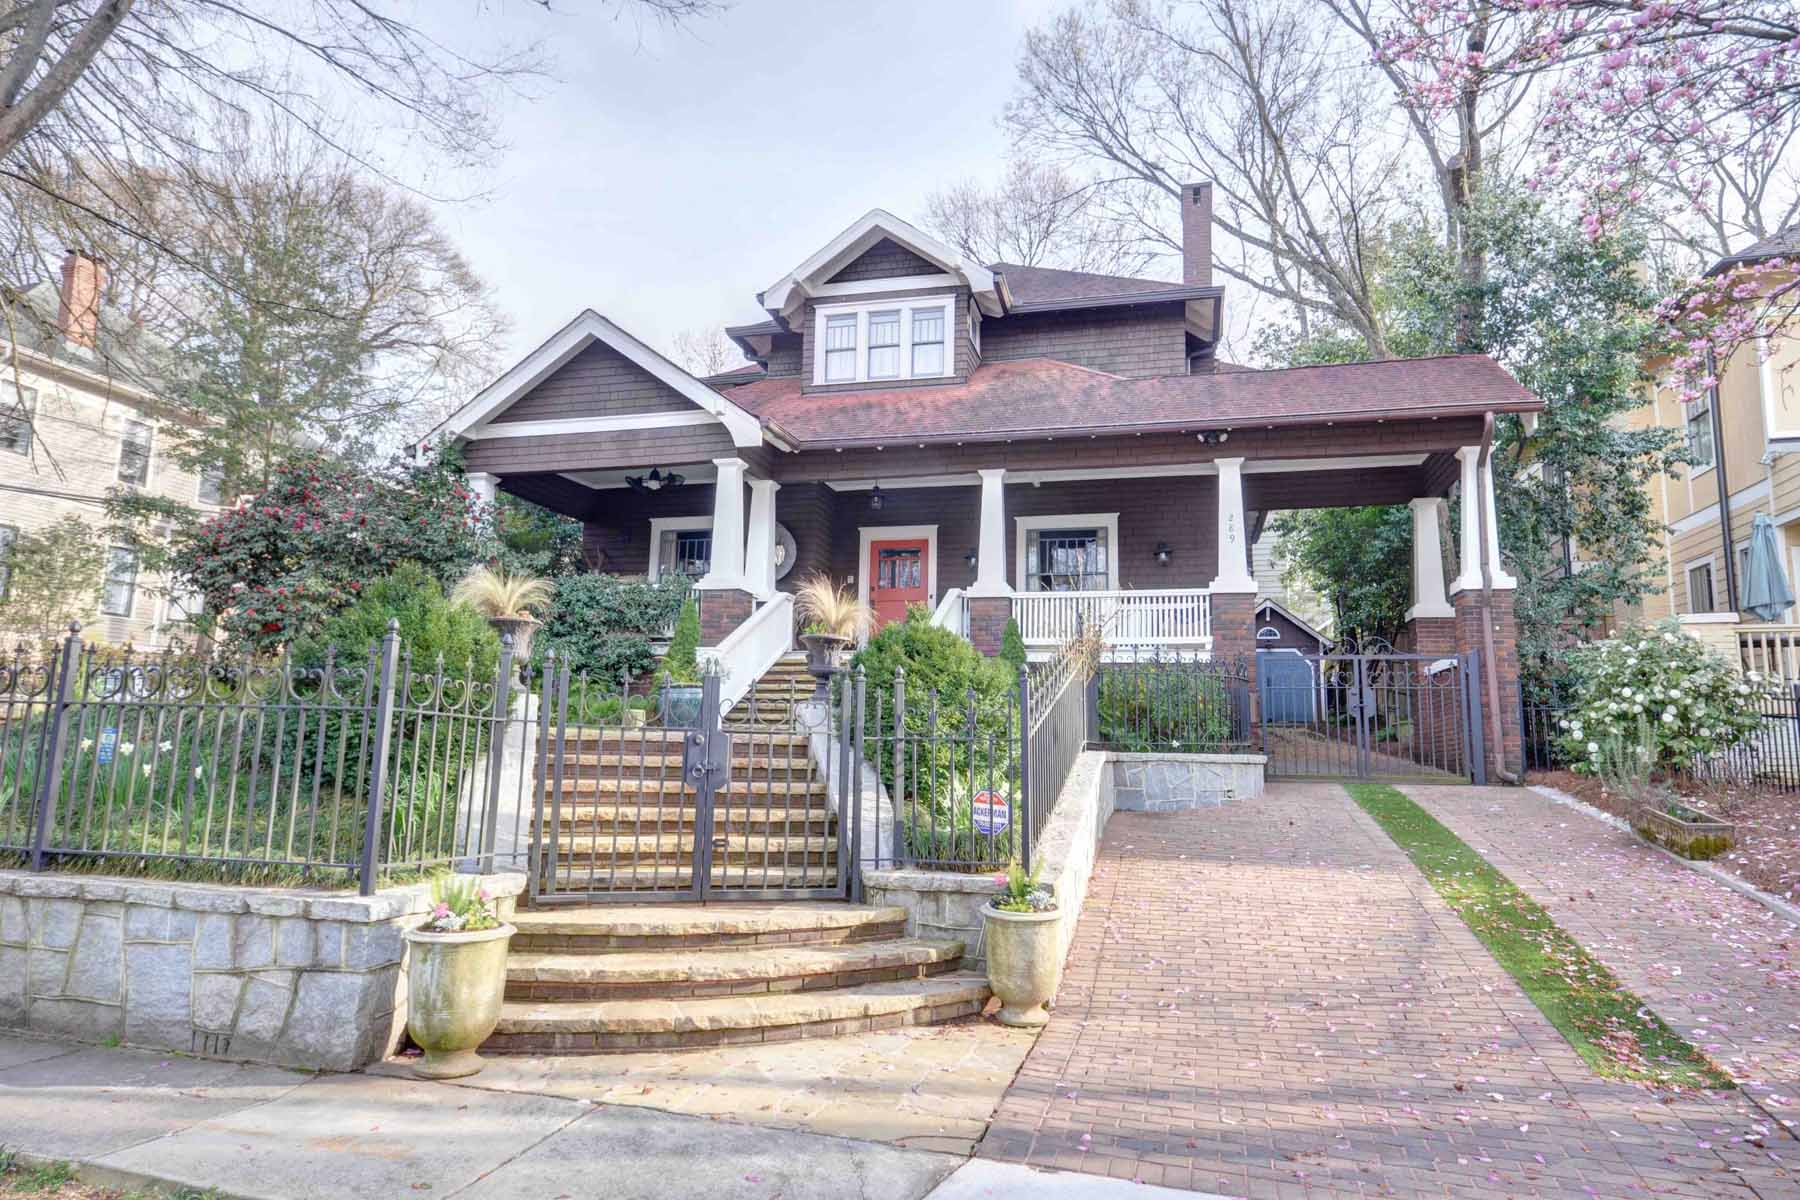 Частный односемейный дом для того Продажа на Completely Renovated Classic Midtown Home on a Premier Street. 289 9th Street NE Midtown, Atlanta, Джорджия, 30309 Соединенные Штаты